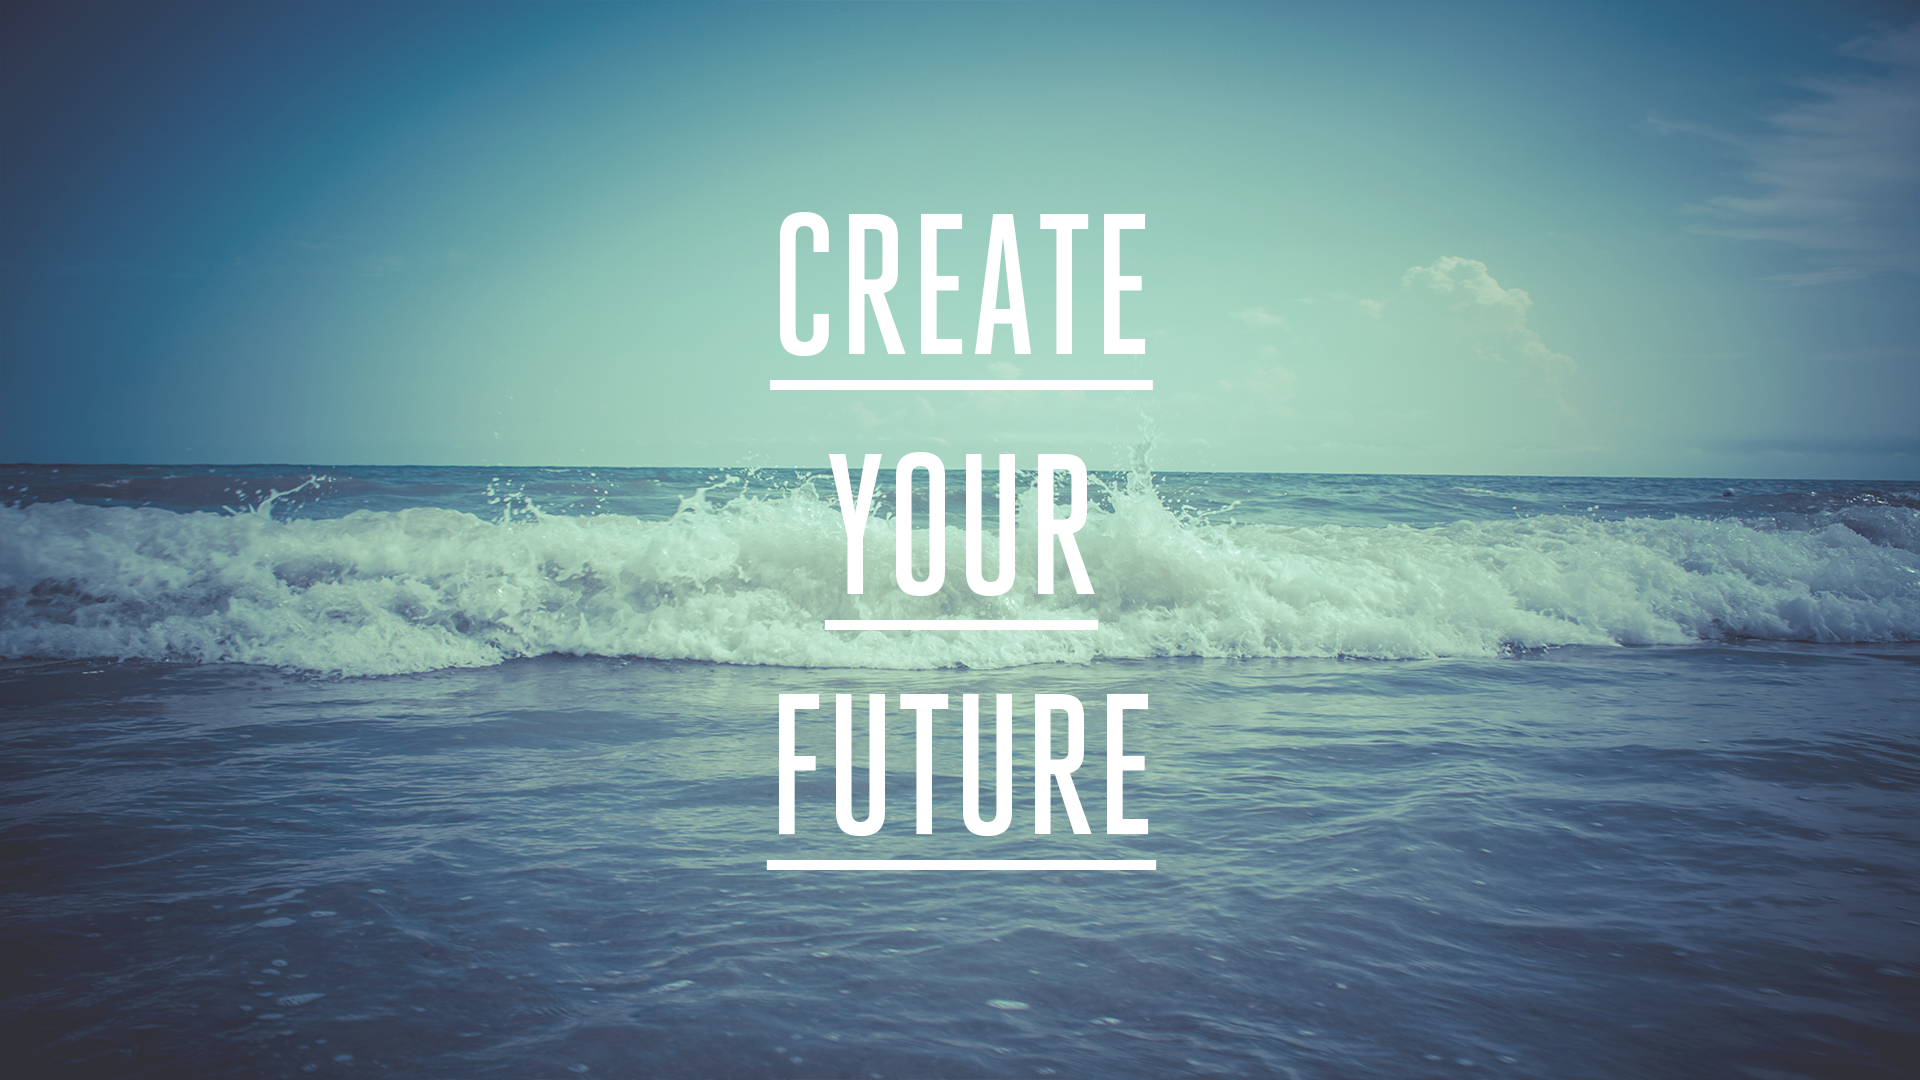 Create Your Future Image